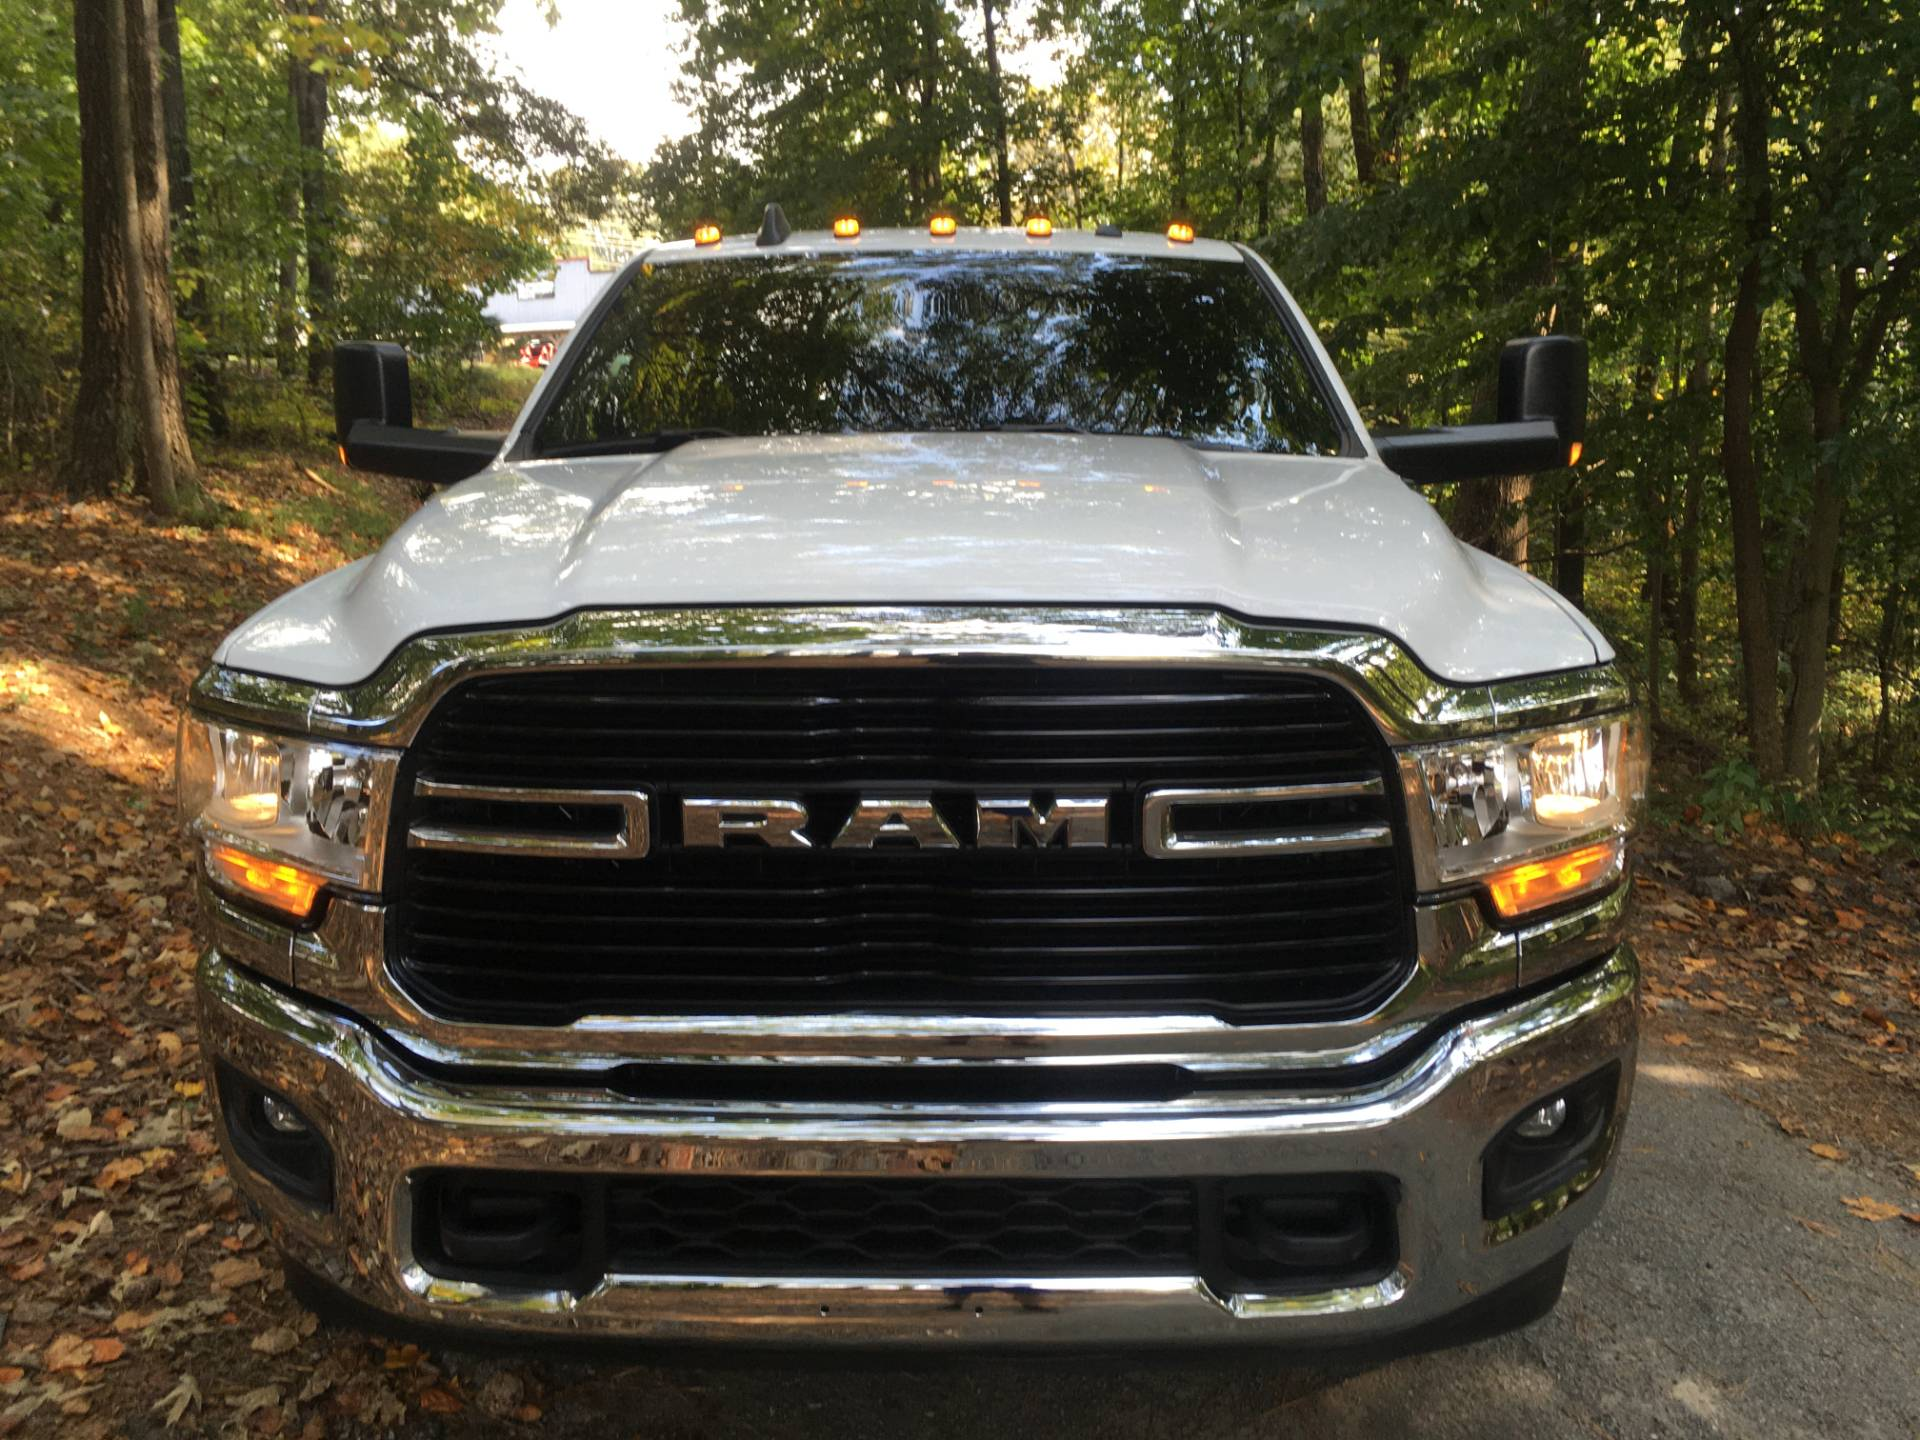 2019 DODGE RAM 3500 BIGHORN 4X4 in Woodstock, Georgia - Photo 7